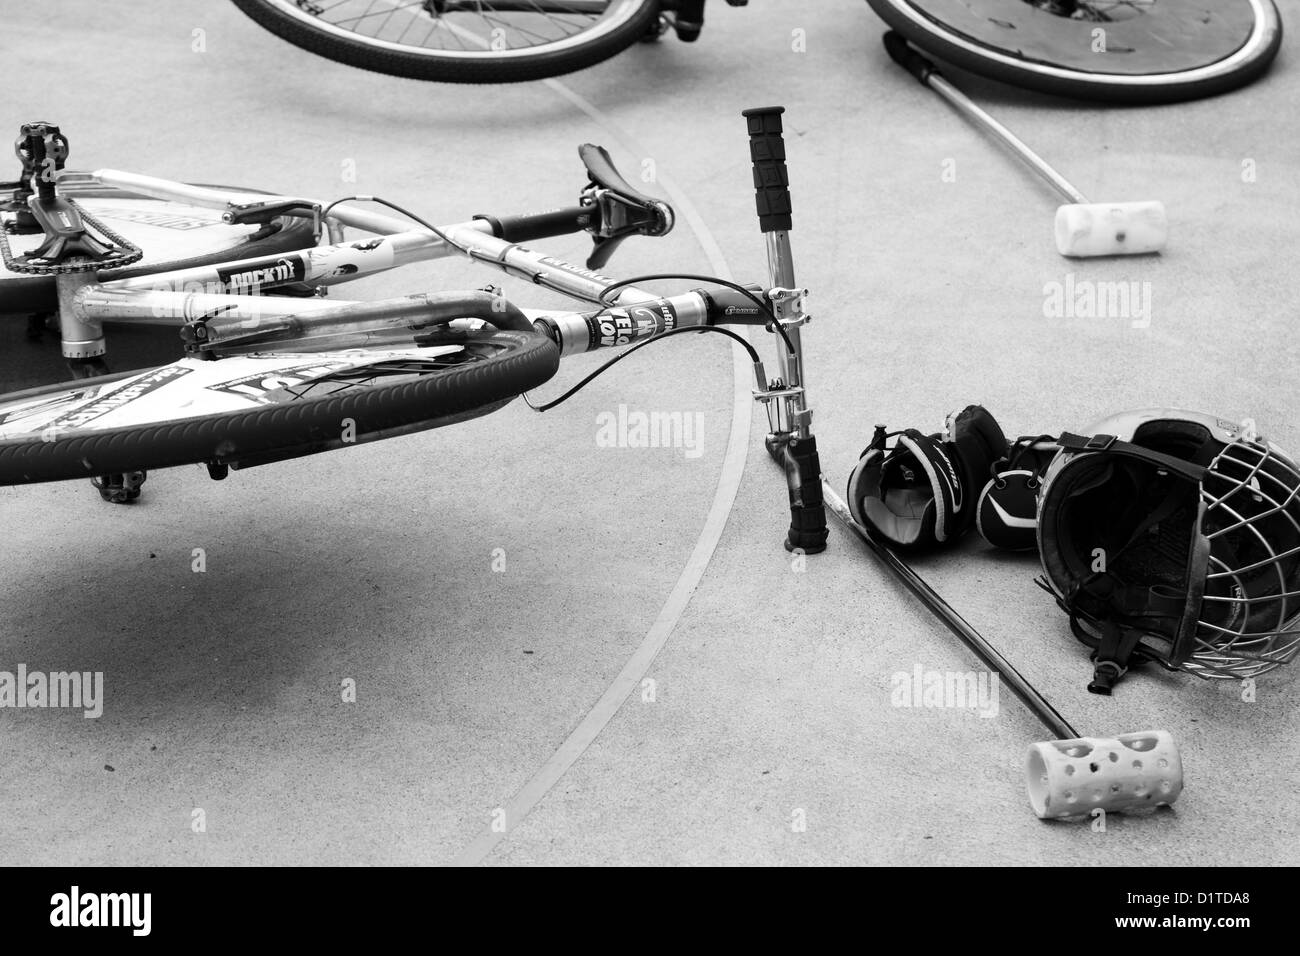 Polo Black And White Stock Photos Images Alamy Full Bike Pato Fx 2 A Image Of Bicycle Laying On The Cement Court With Helmet